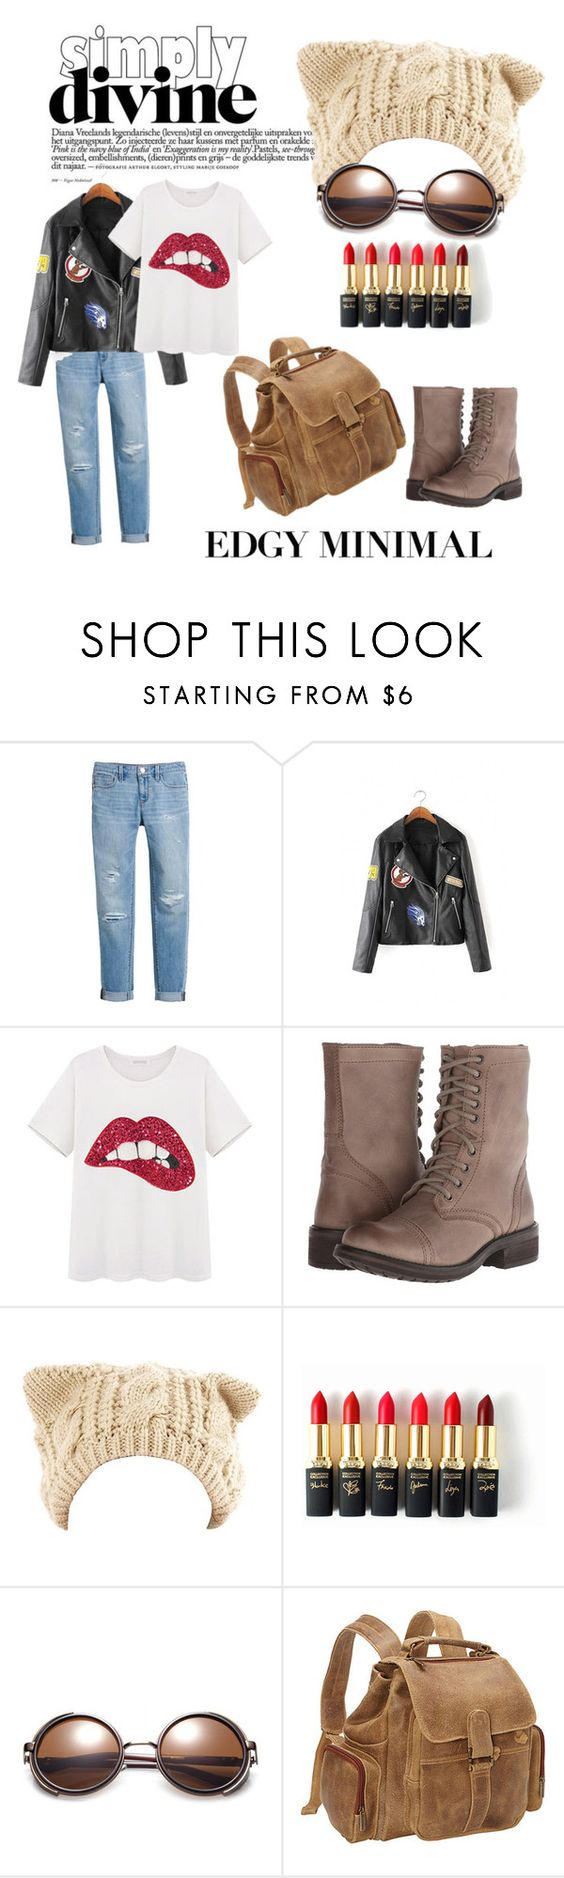 """""""Edgy Minimal"""" by the-cat-without-a-hat ❤ liked on Polyvore featuring White House Black Market, Steve Madden, L'Oréal Paris and Le Donne"""